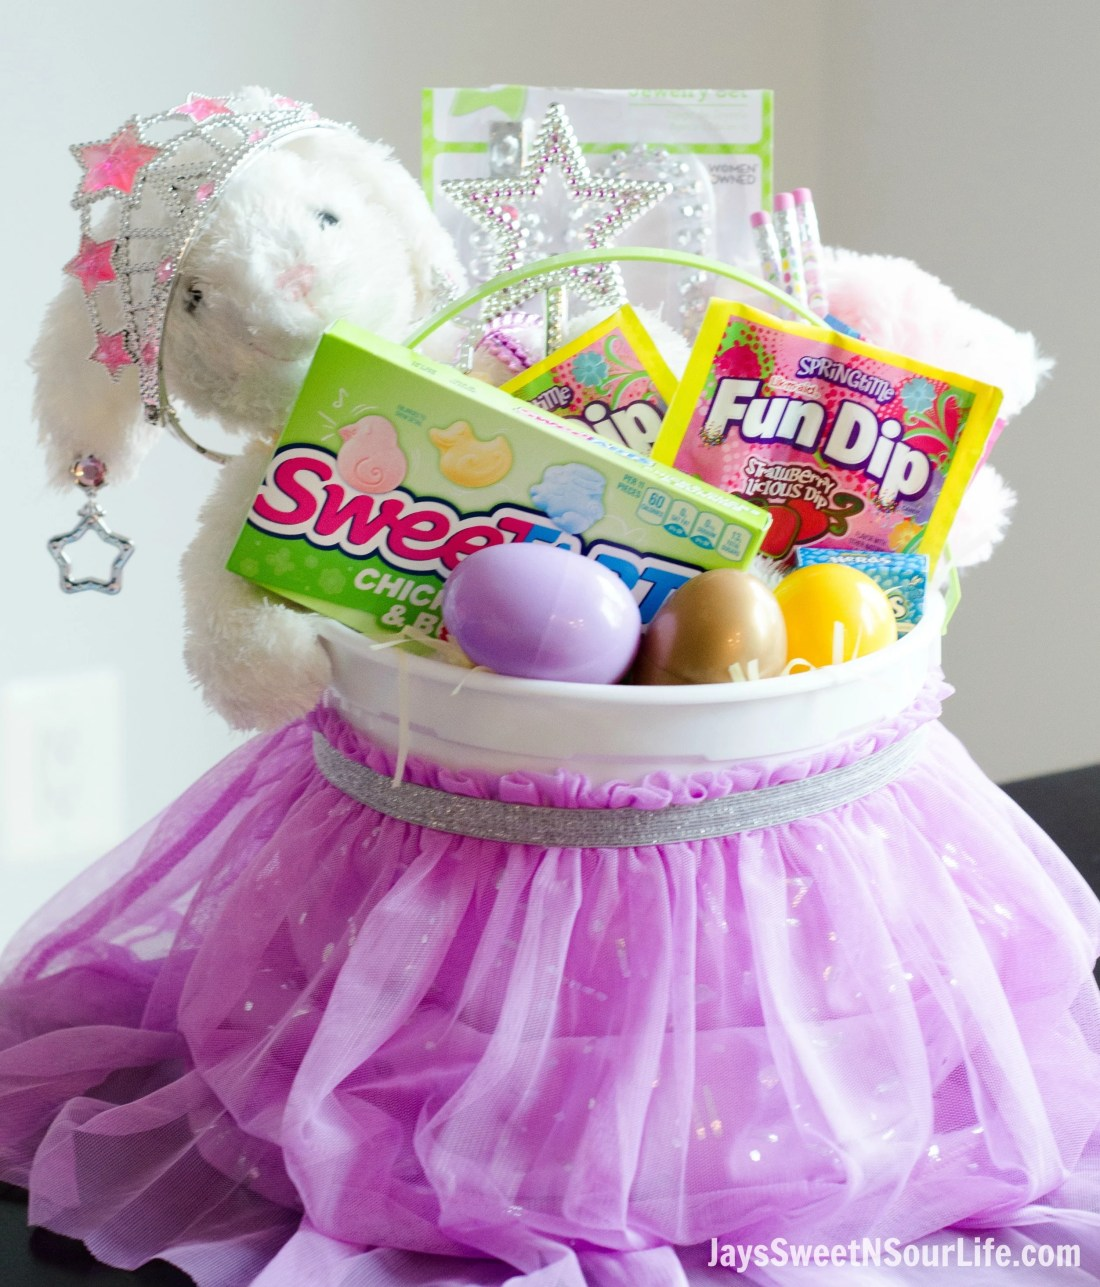 This Princess Easter Basket comes equipped with everything your Princess needs. This basket is packed with princess necessities and candy of course.